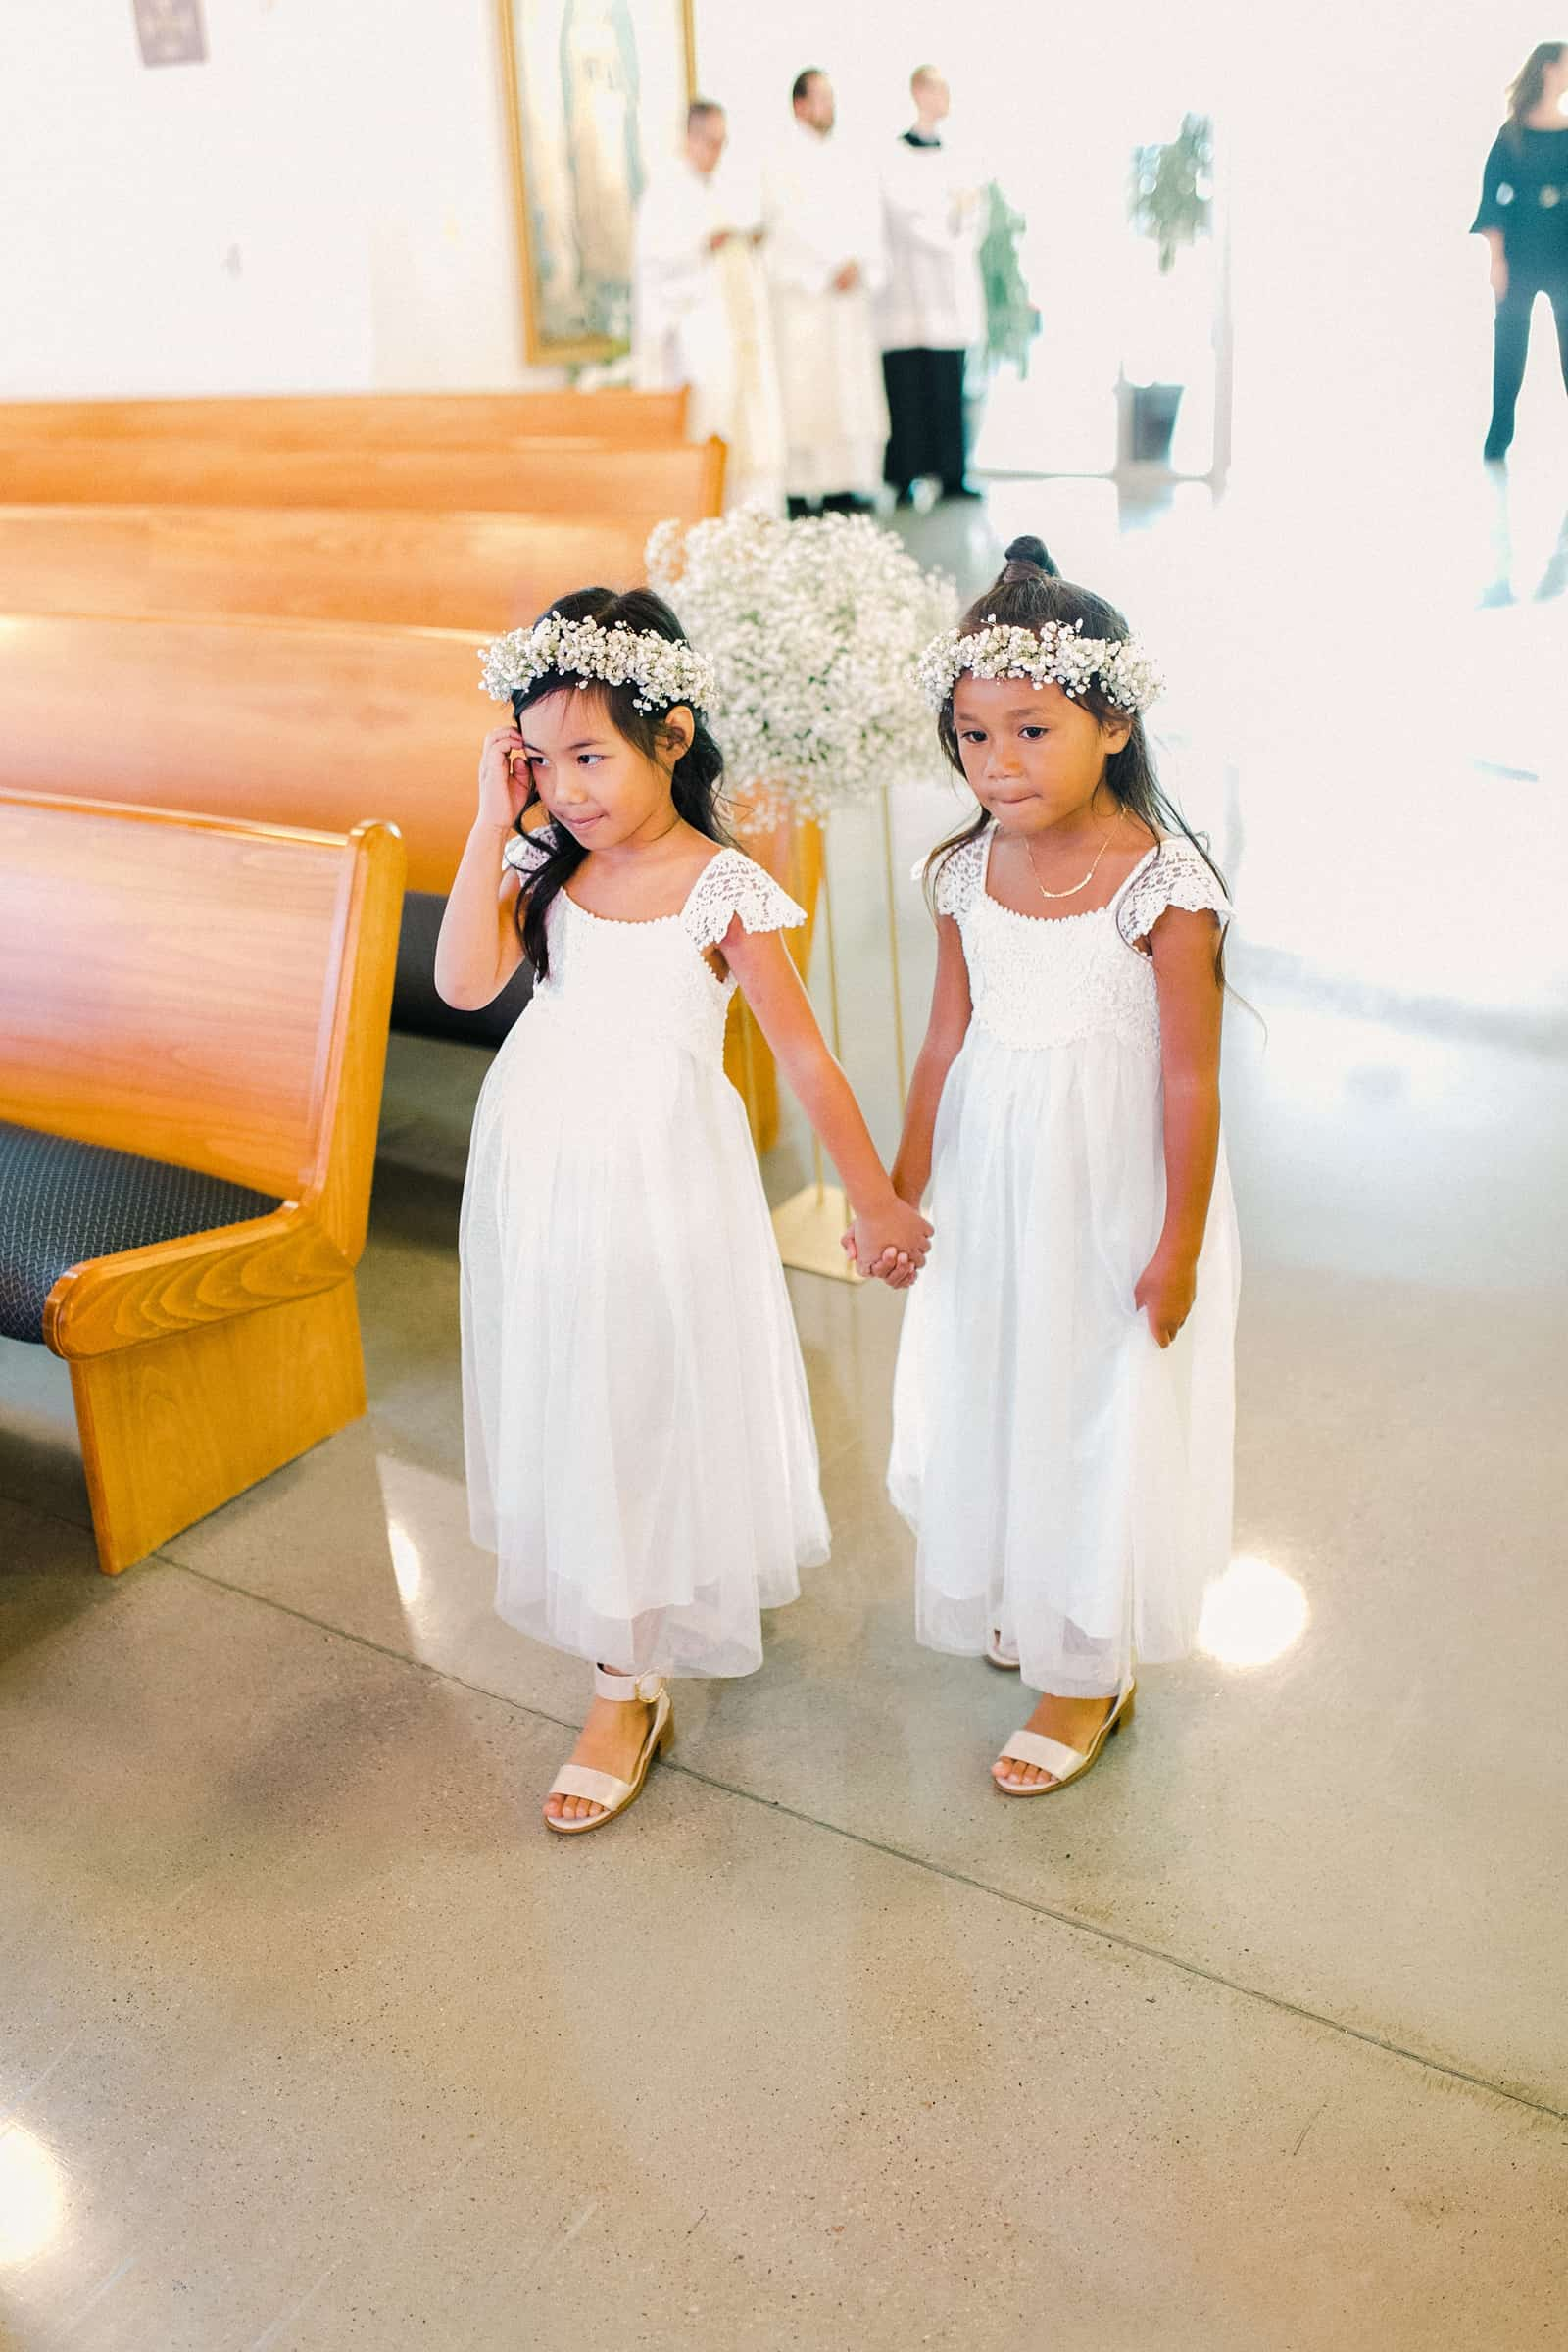 Flower girls with baby's breath flower crowns and white dresses walk down the aisle